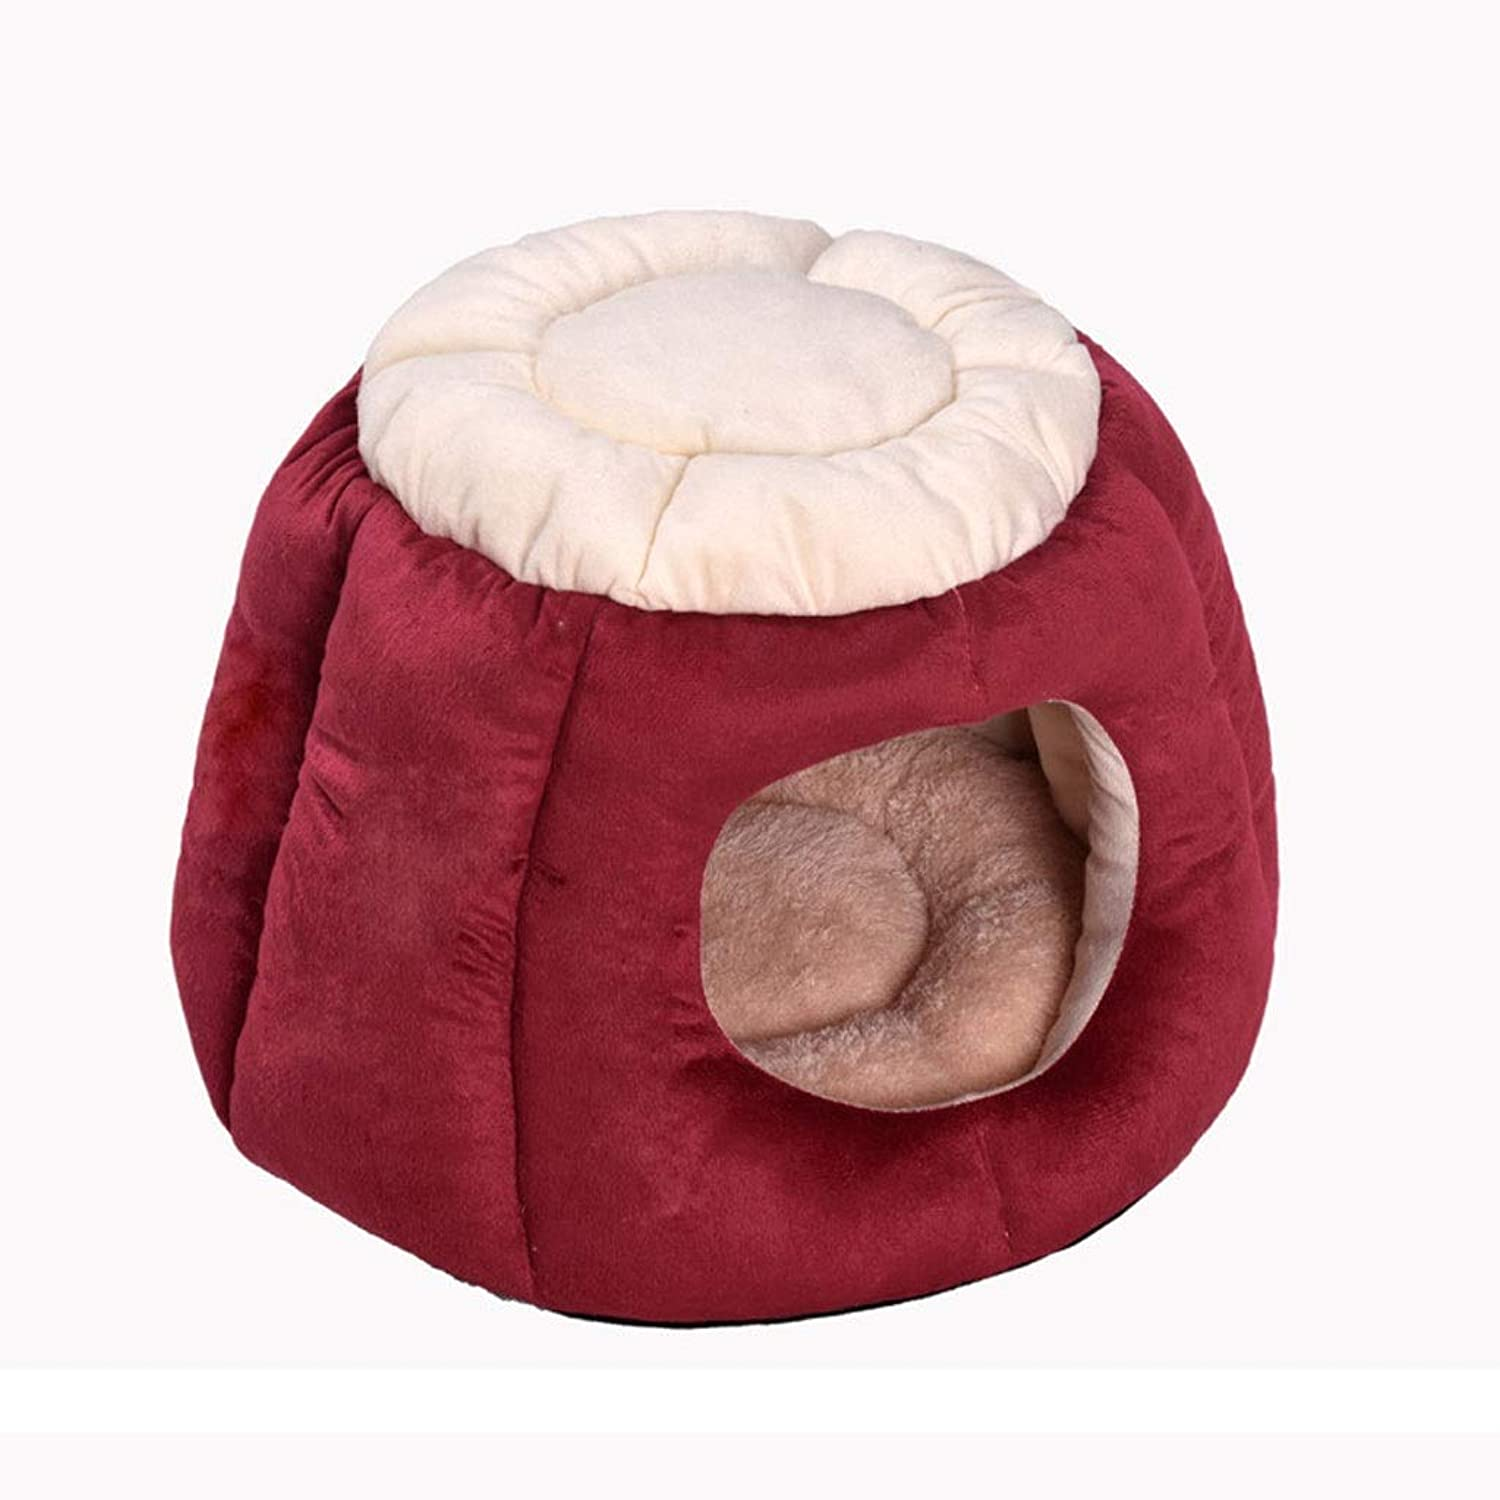 BarryL Dog Bed Cat Bed Cylindrical or round Fleece Nesting Dog Cave Bed Pet Cat Bed for Cats and Small Dogs Pet Bed (color   Red, Size   50  35cm)